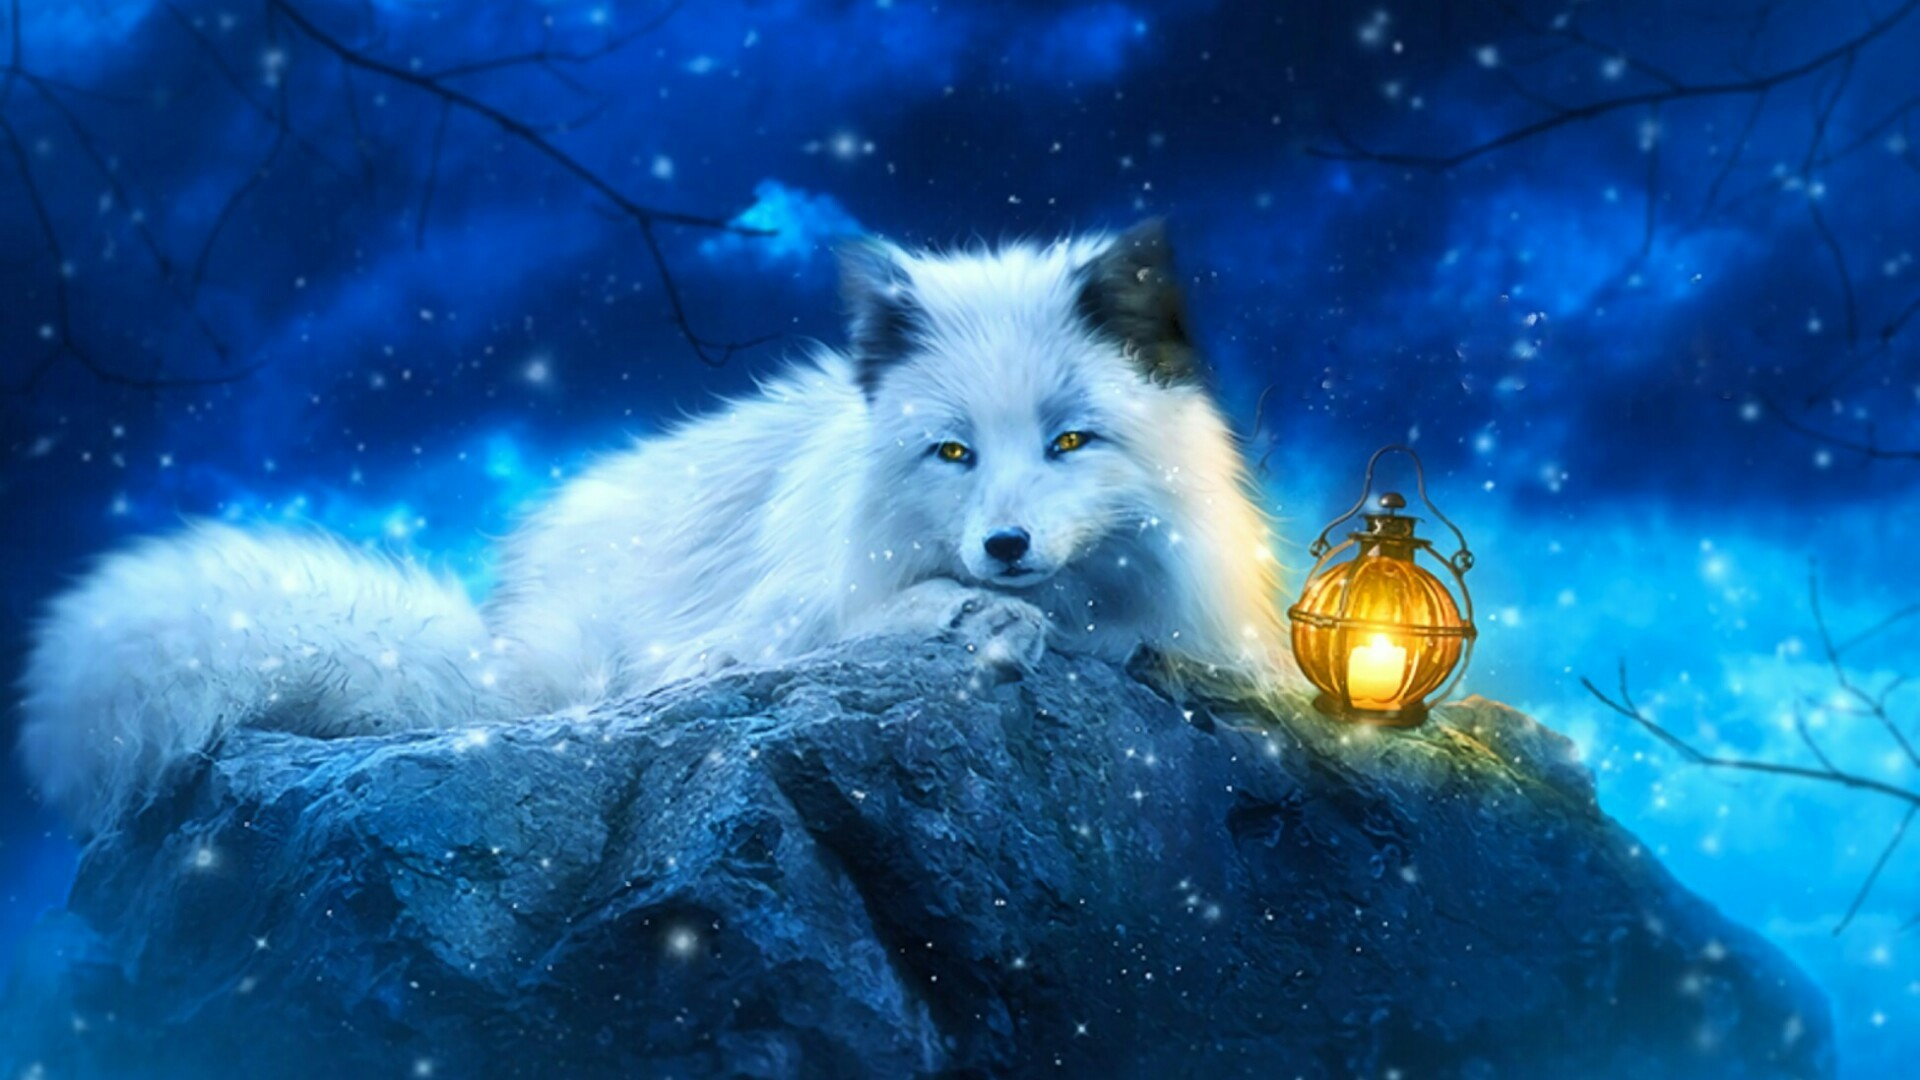 Res: 1920x1080, White Fox Art Wallpaper | Wallpaper Studio 10 | Tens of thousands HD and  UltraHD wallpapers for Android, Windows and Xbox